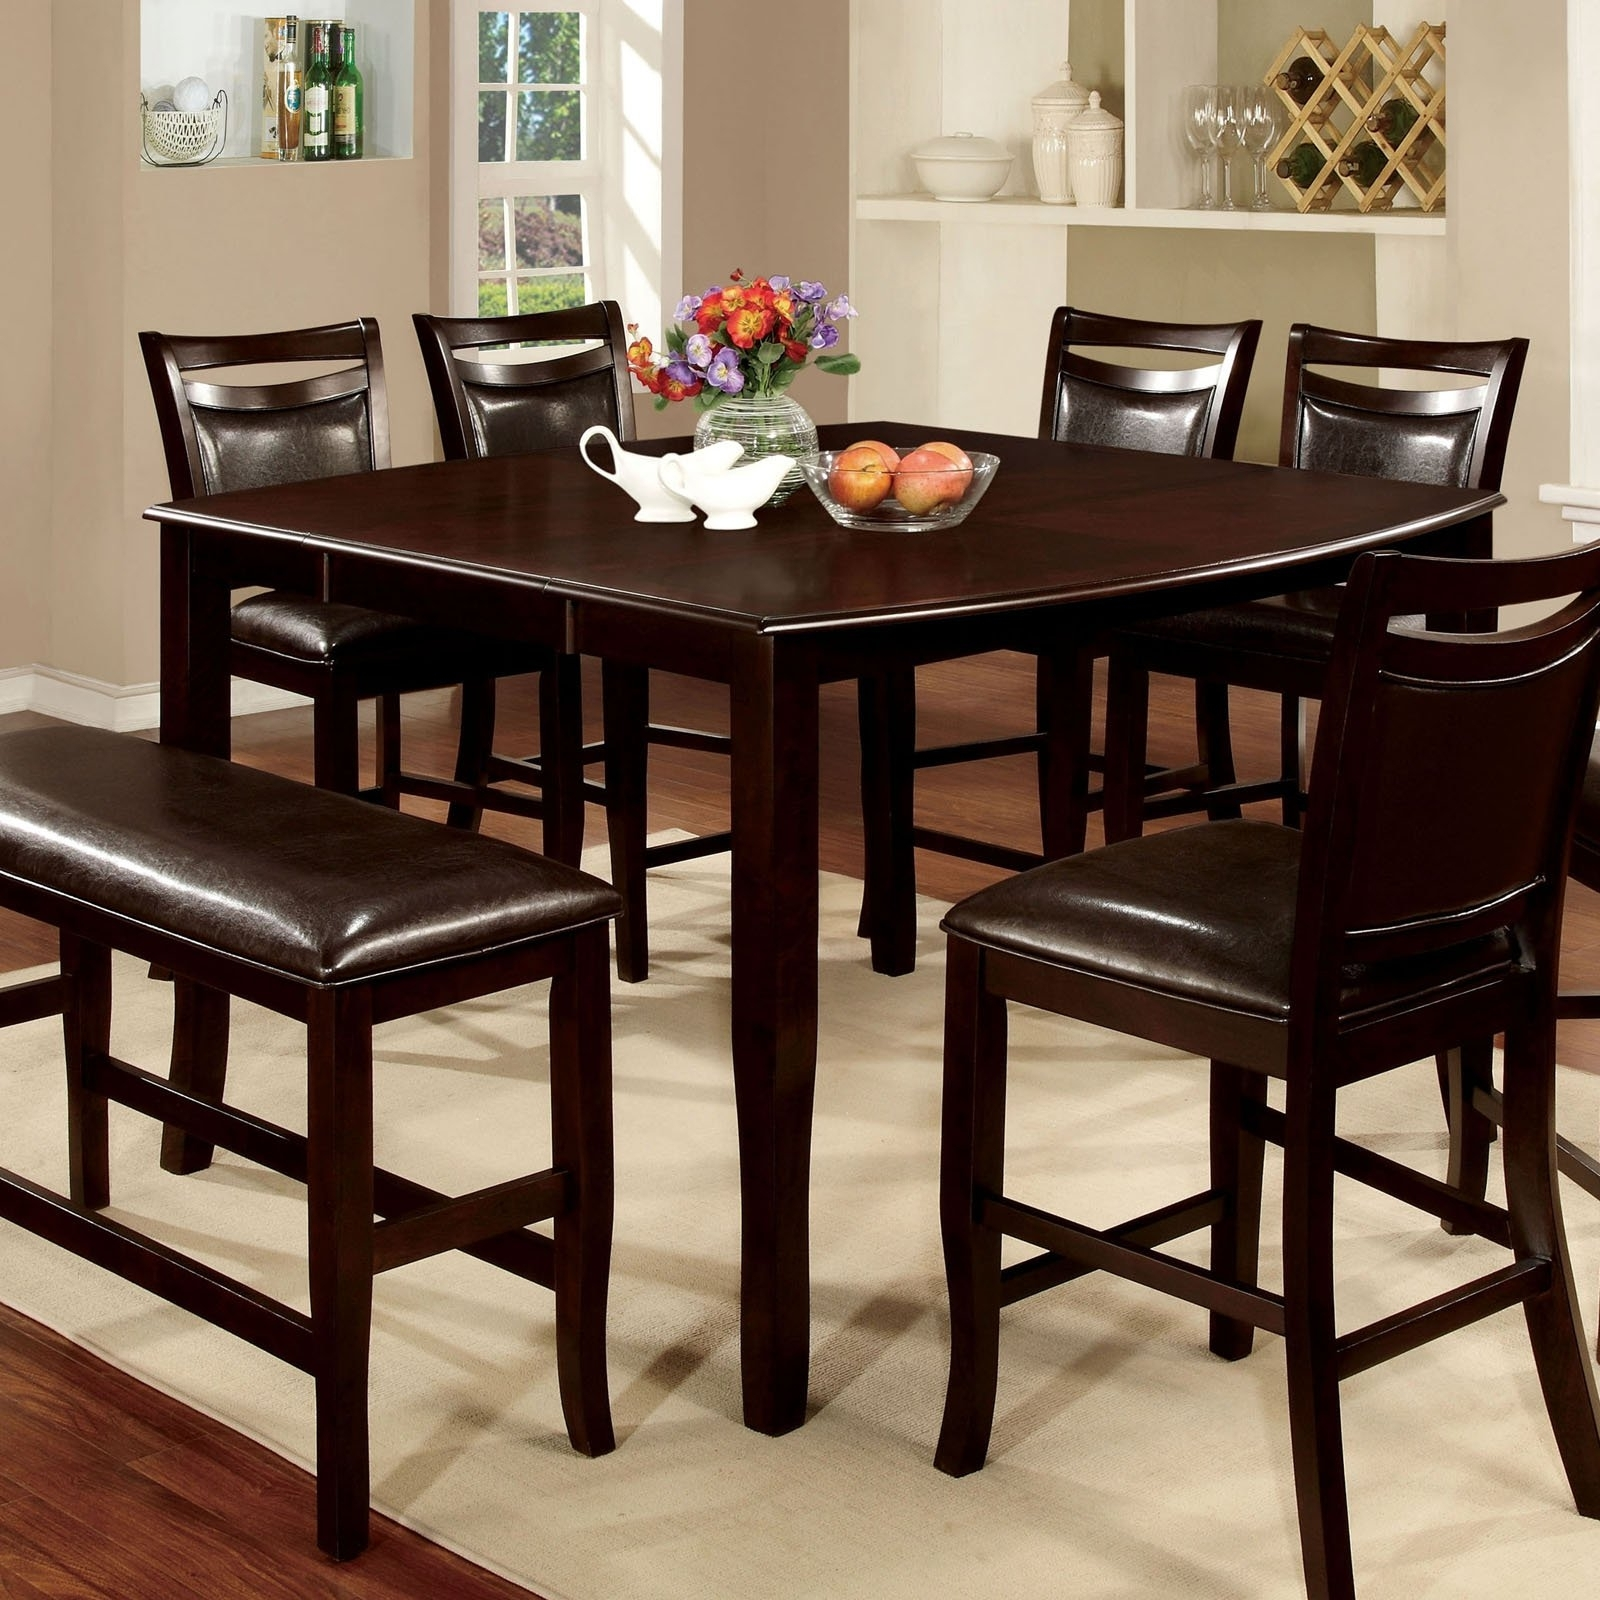 Espresso Rectangular Dining Table - Dining Tables Ideas throughout 2017 Lindy Espresso Rectangle Dining Tables